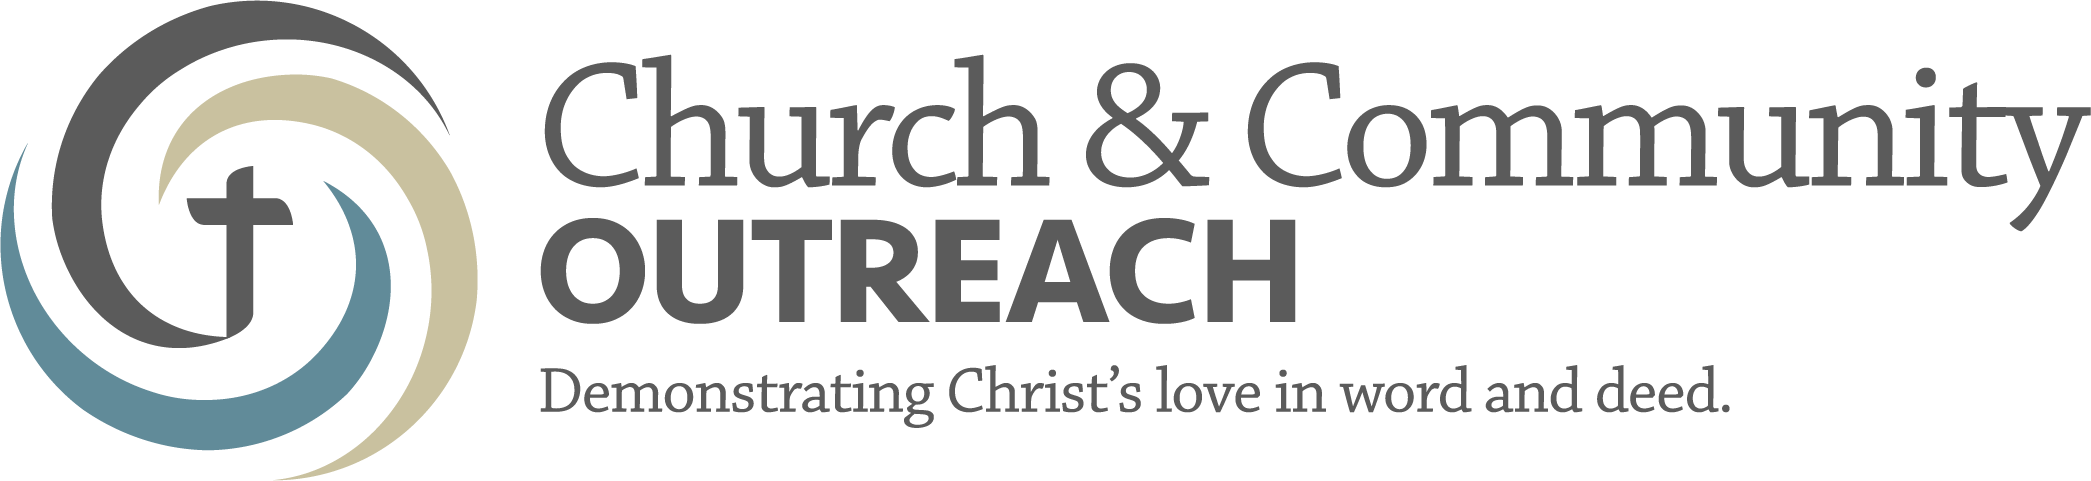 Church & Community Outreach